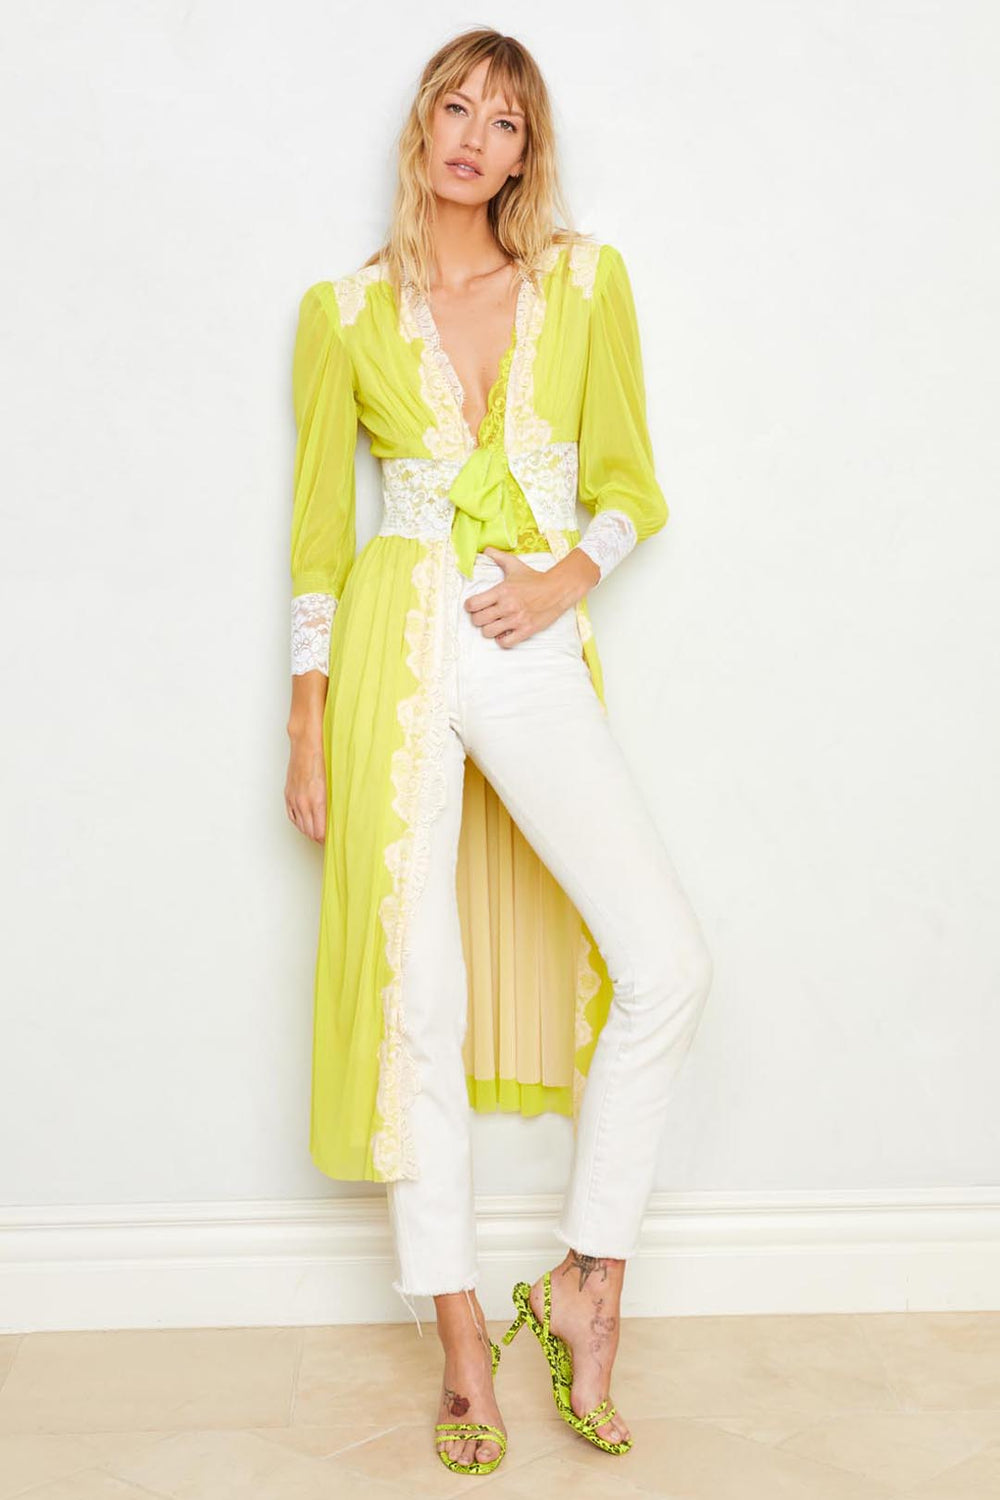 Neon yellow long lace robe with a tie front. Machine washable.